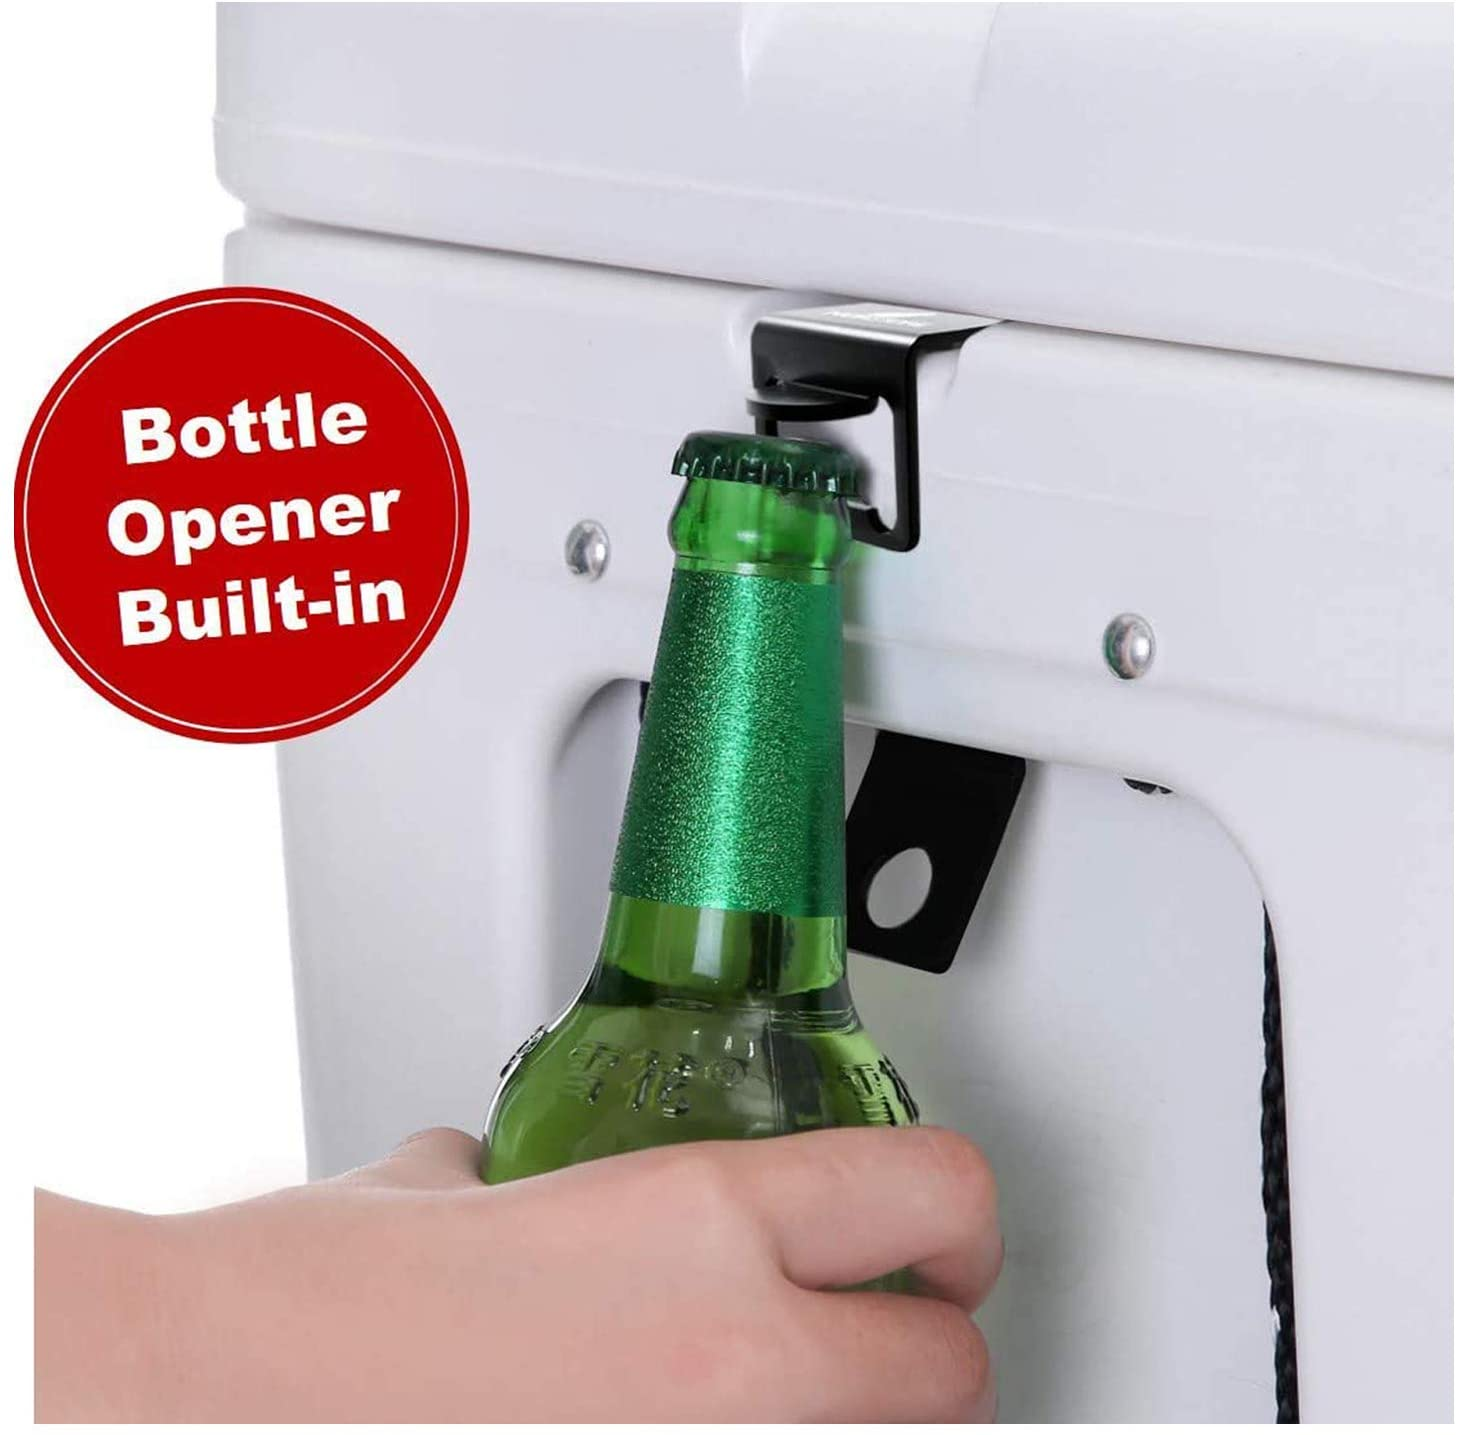 Noa Store Cooler Lock Bracket with Bottle Opener Compatible with Yeti/RTIC Coolers, Made of Highest Grade Stainless Steel (316L)